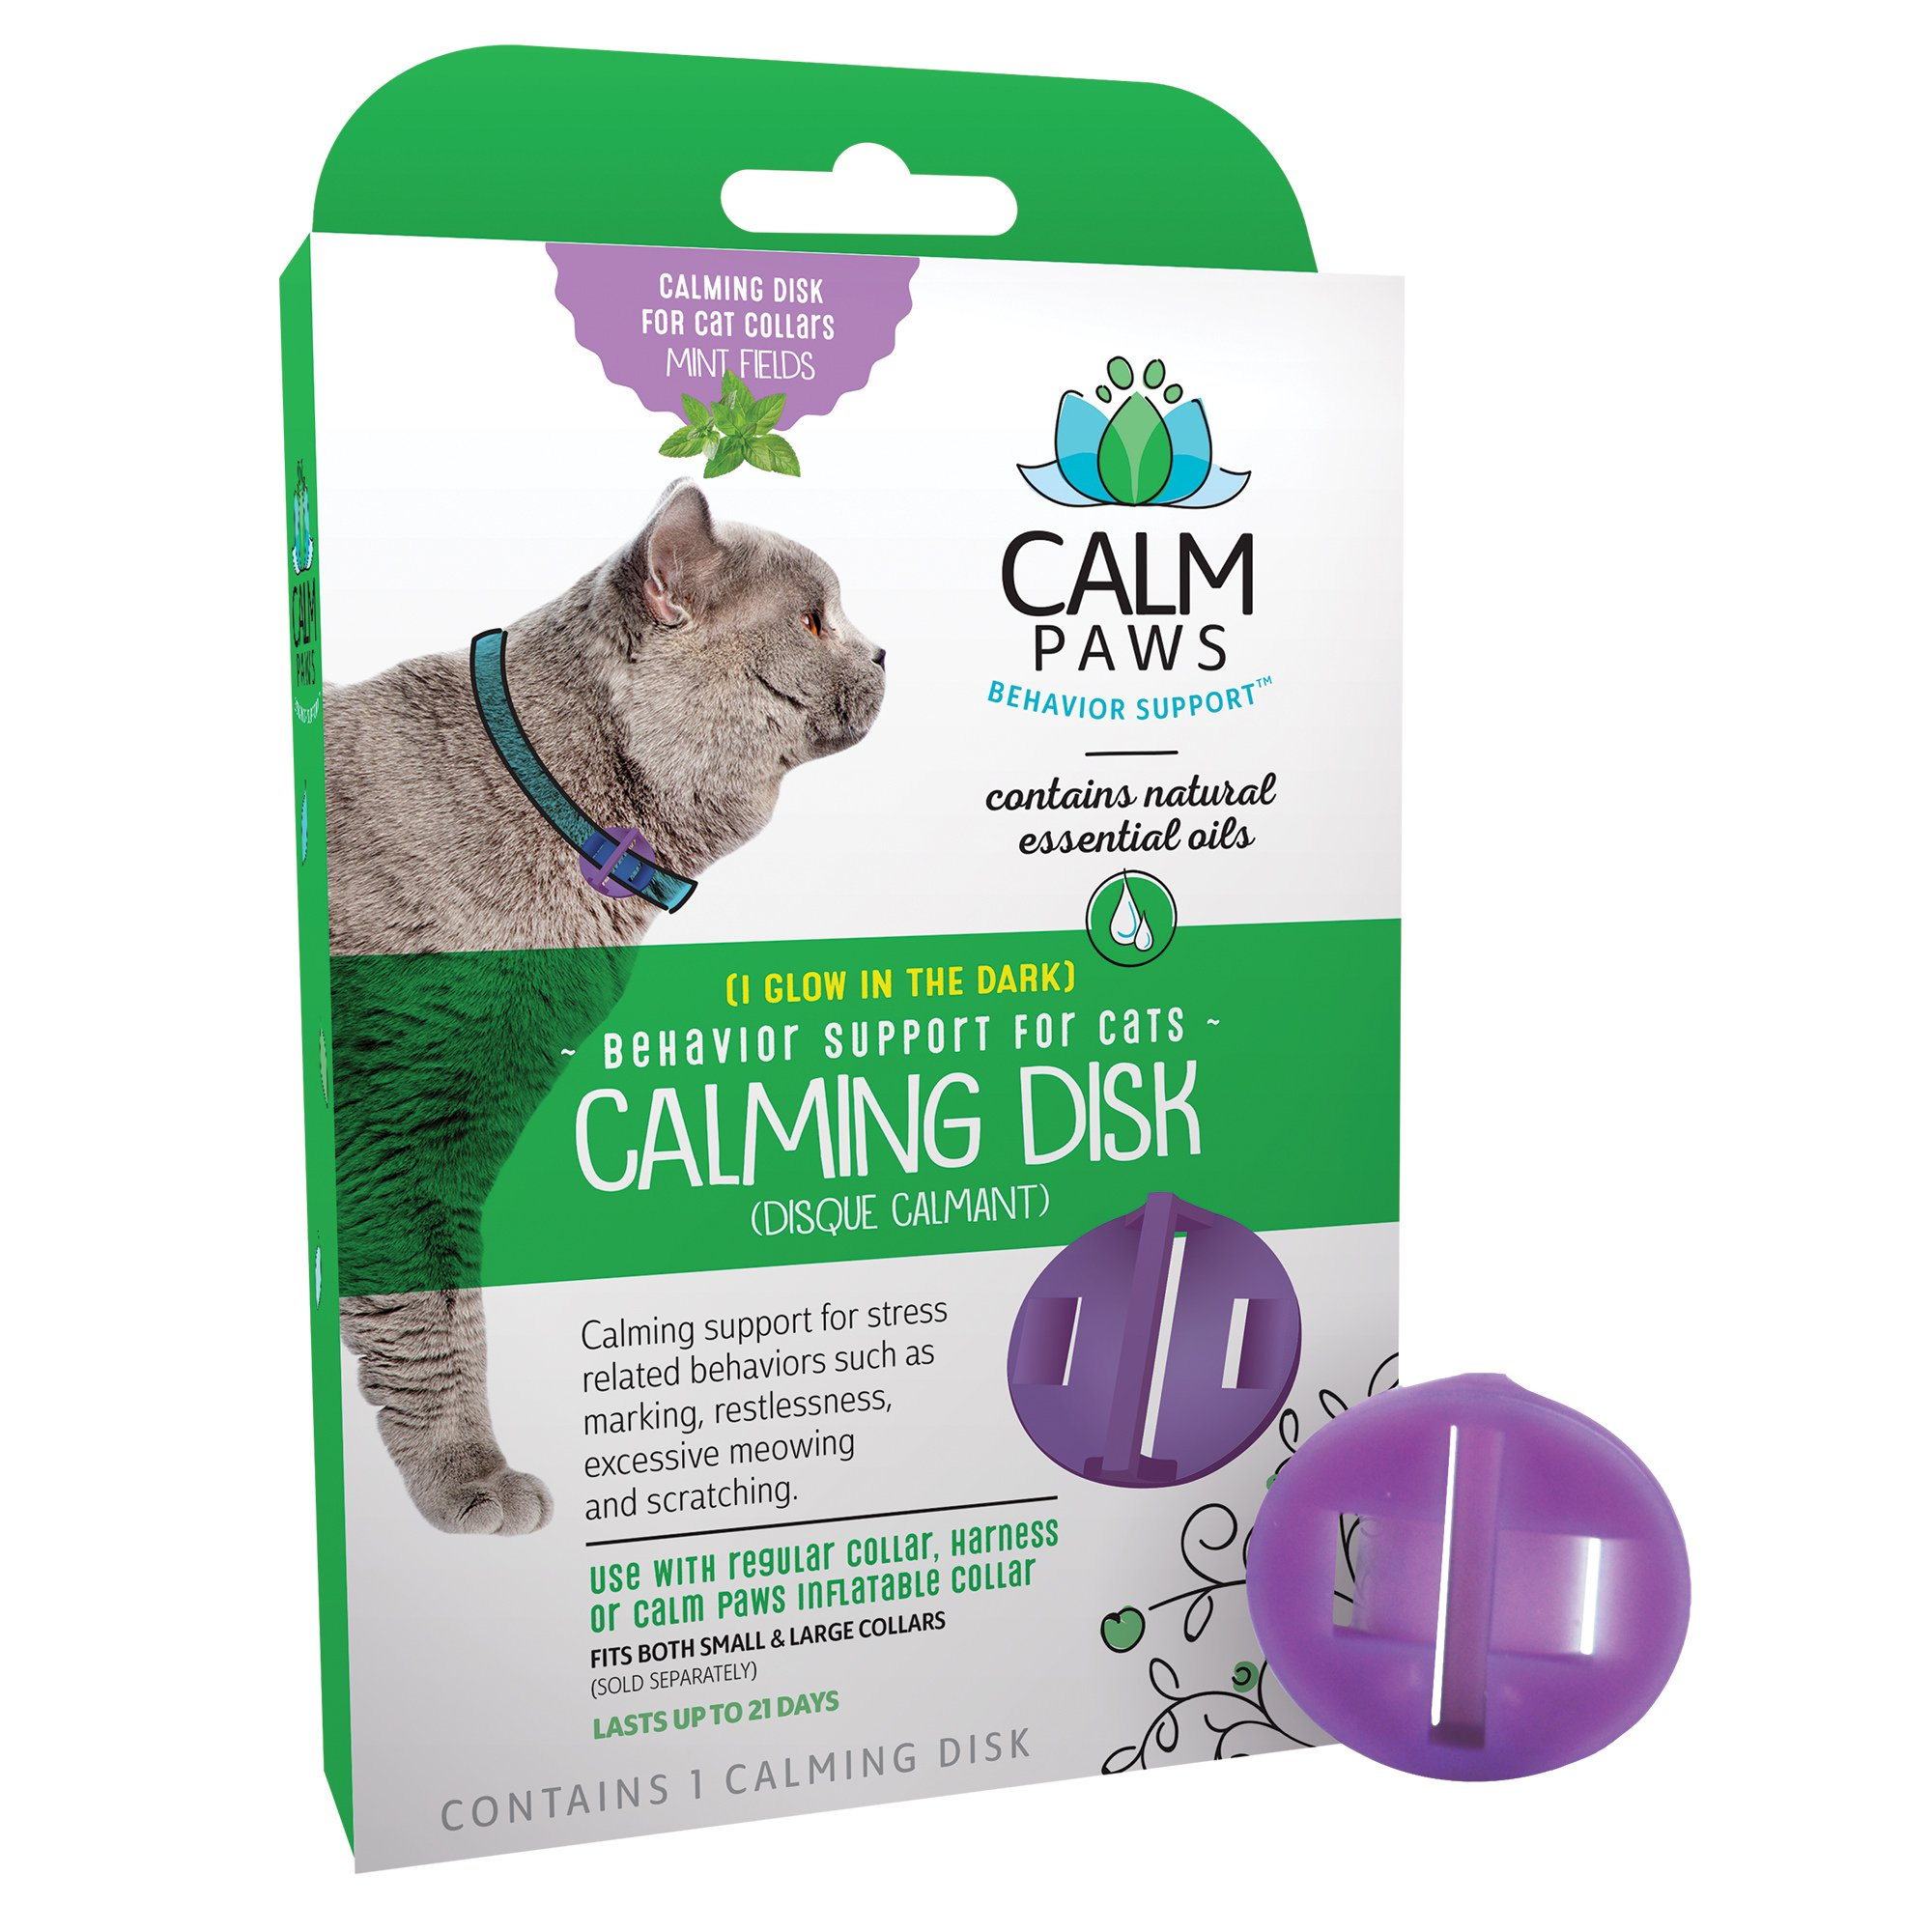 Calm Paws Calming Disk Medallion Cat by Calm Paws